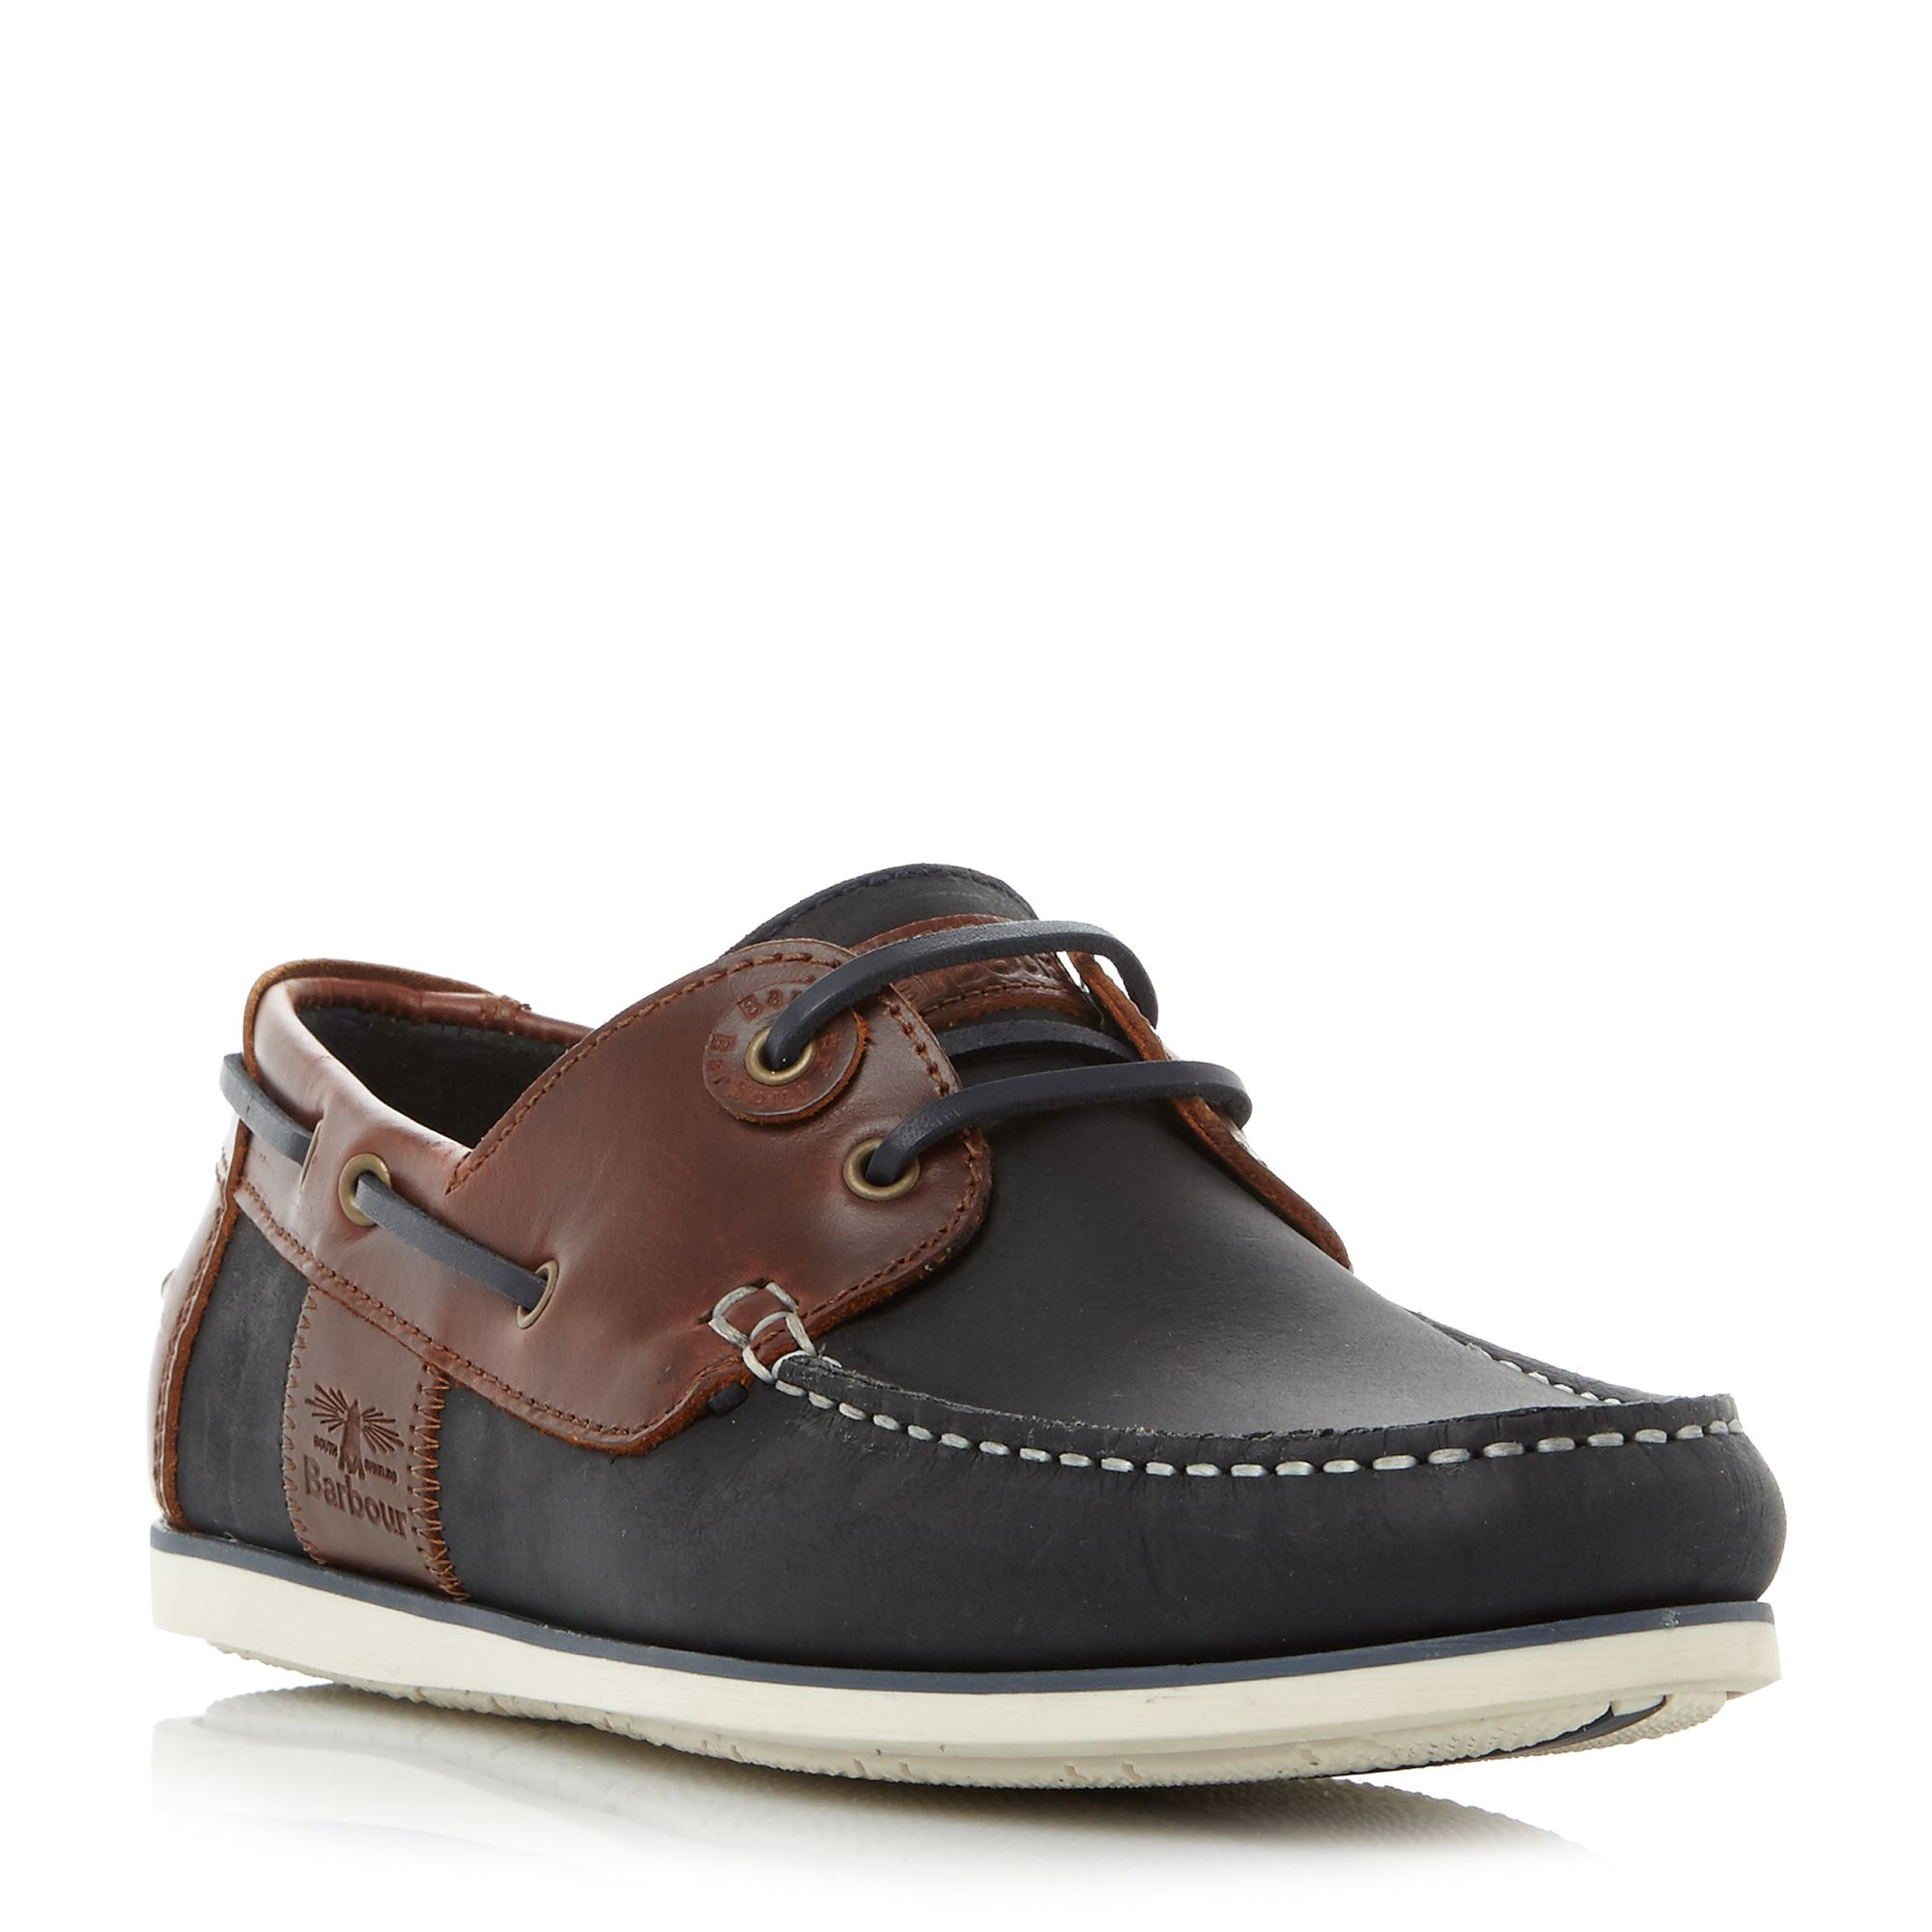 Barbour Capstan eyelet lace up boat shoes Dark Blue